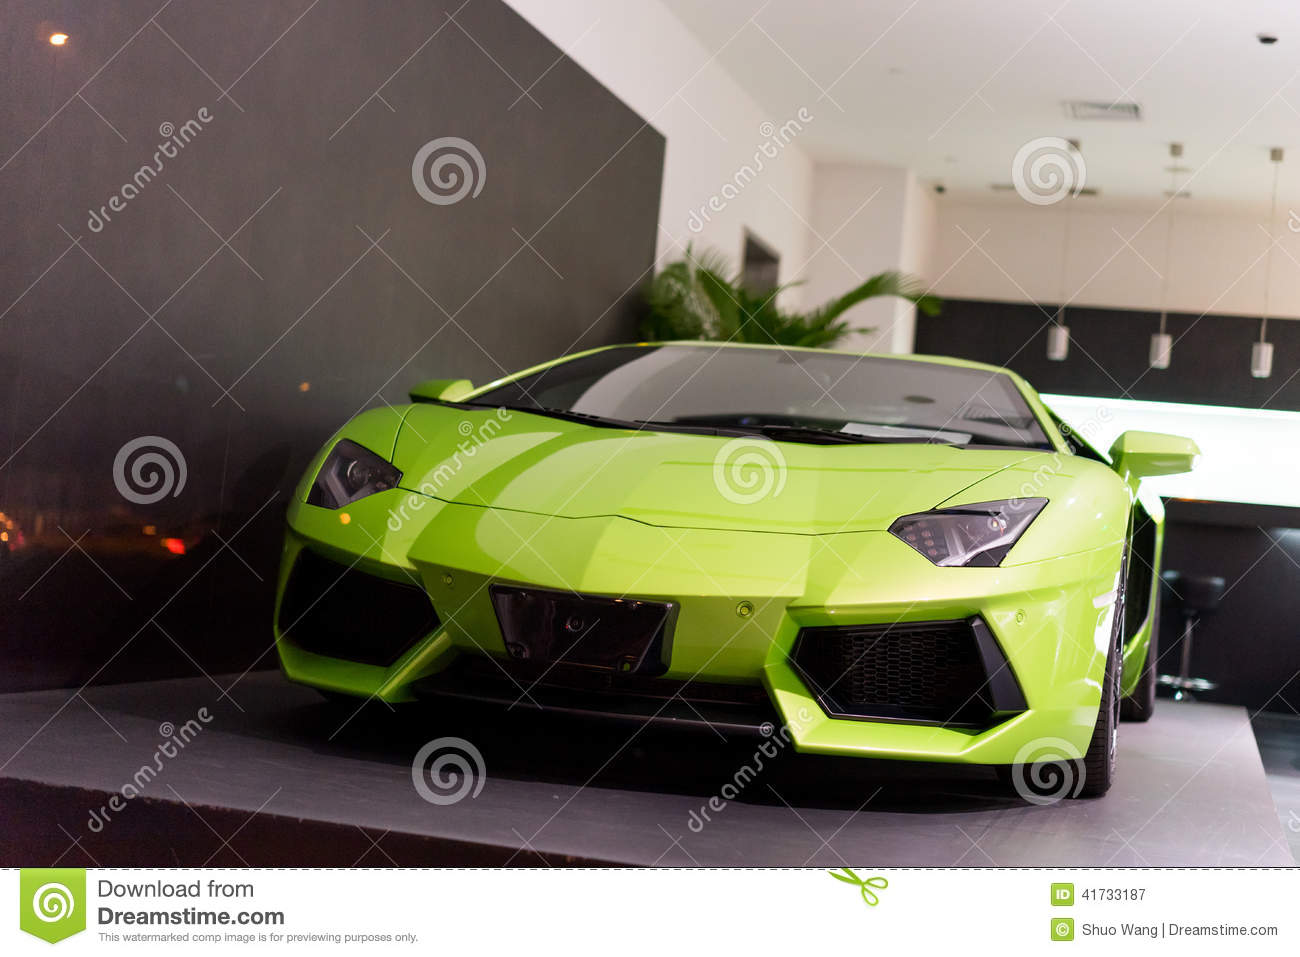 Expensive Car For Sale Or Gift Royalty Free Stock Image: Cars For Sale Stock Photo